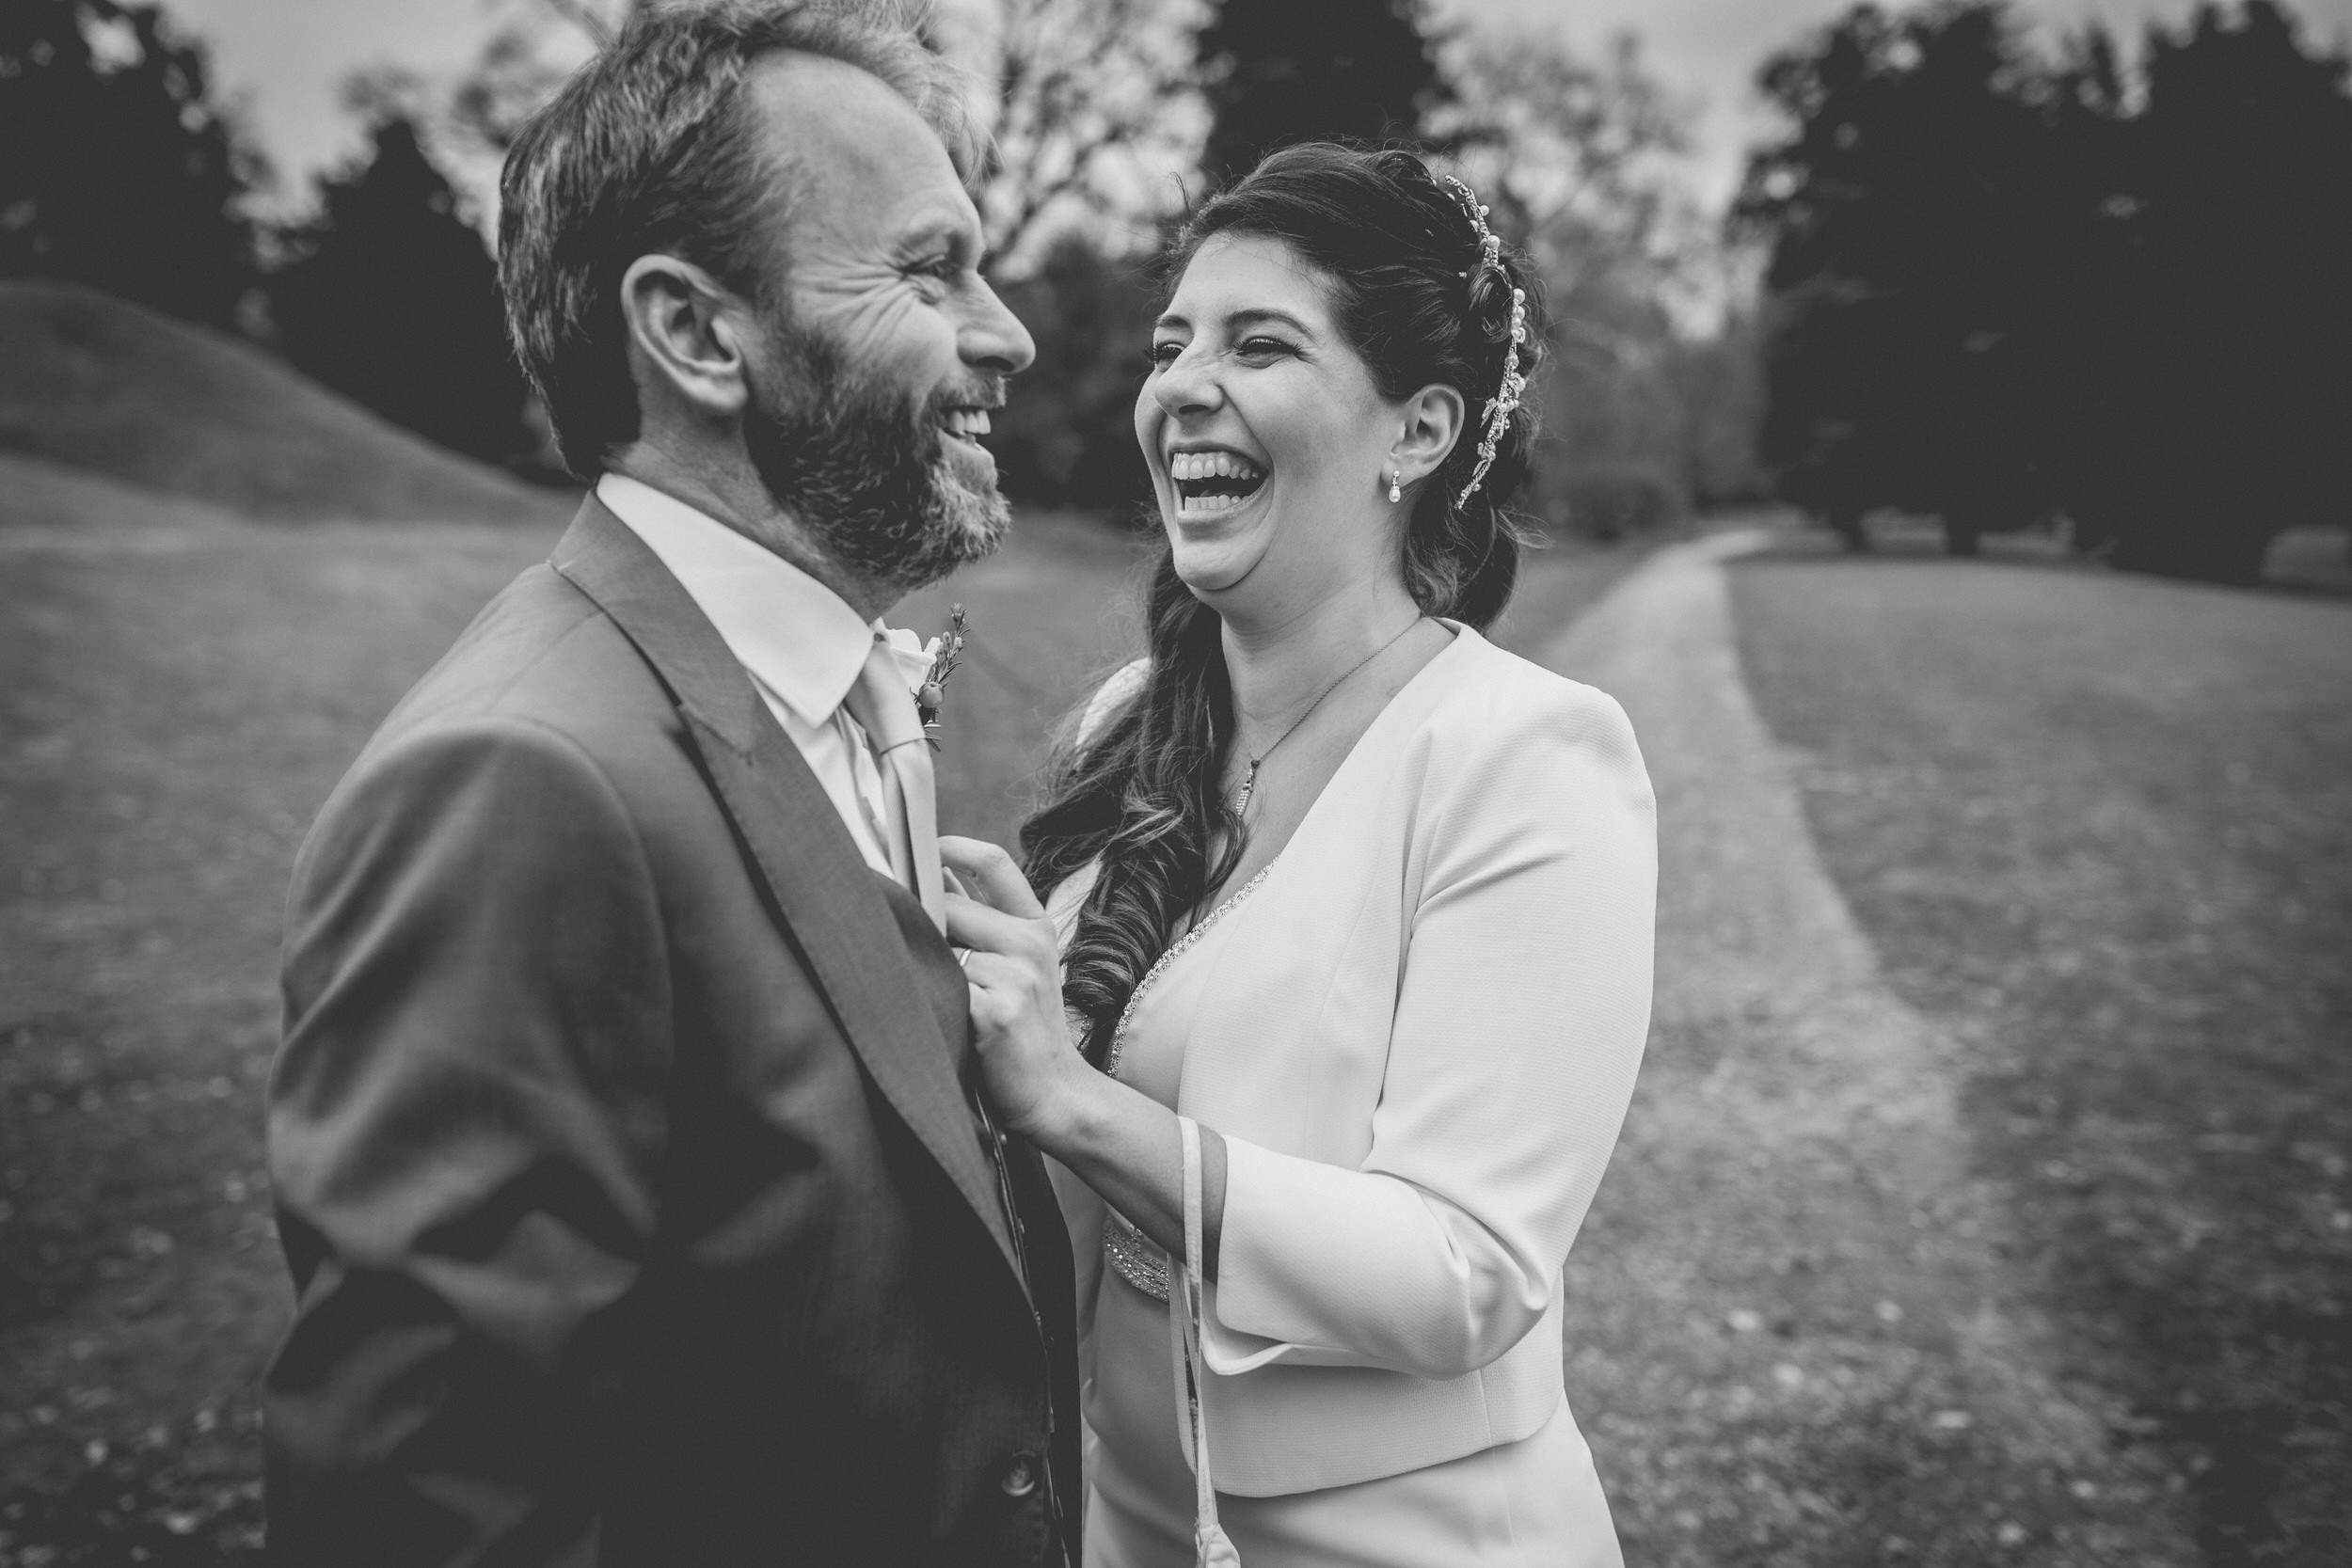 genuine laughter on their wedding day